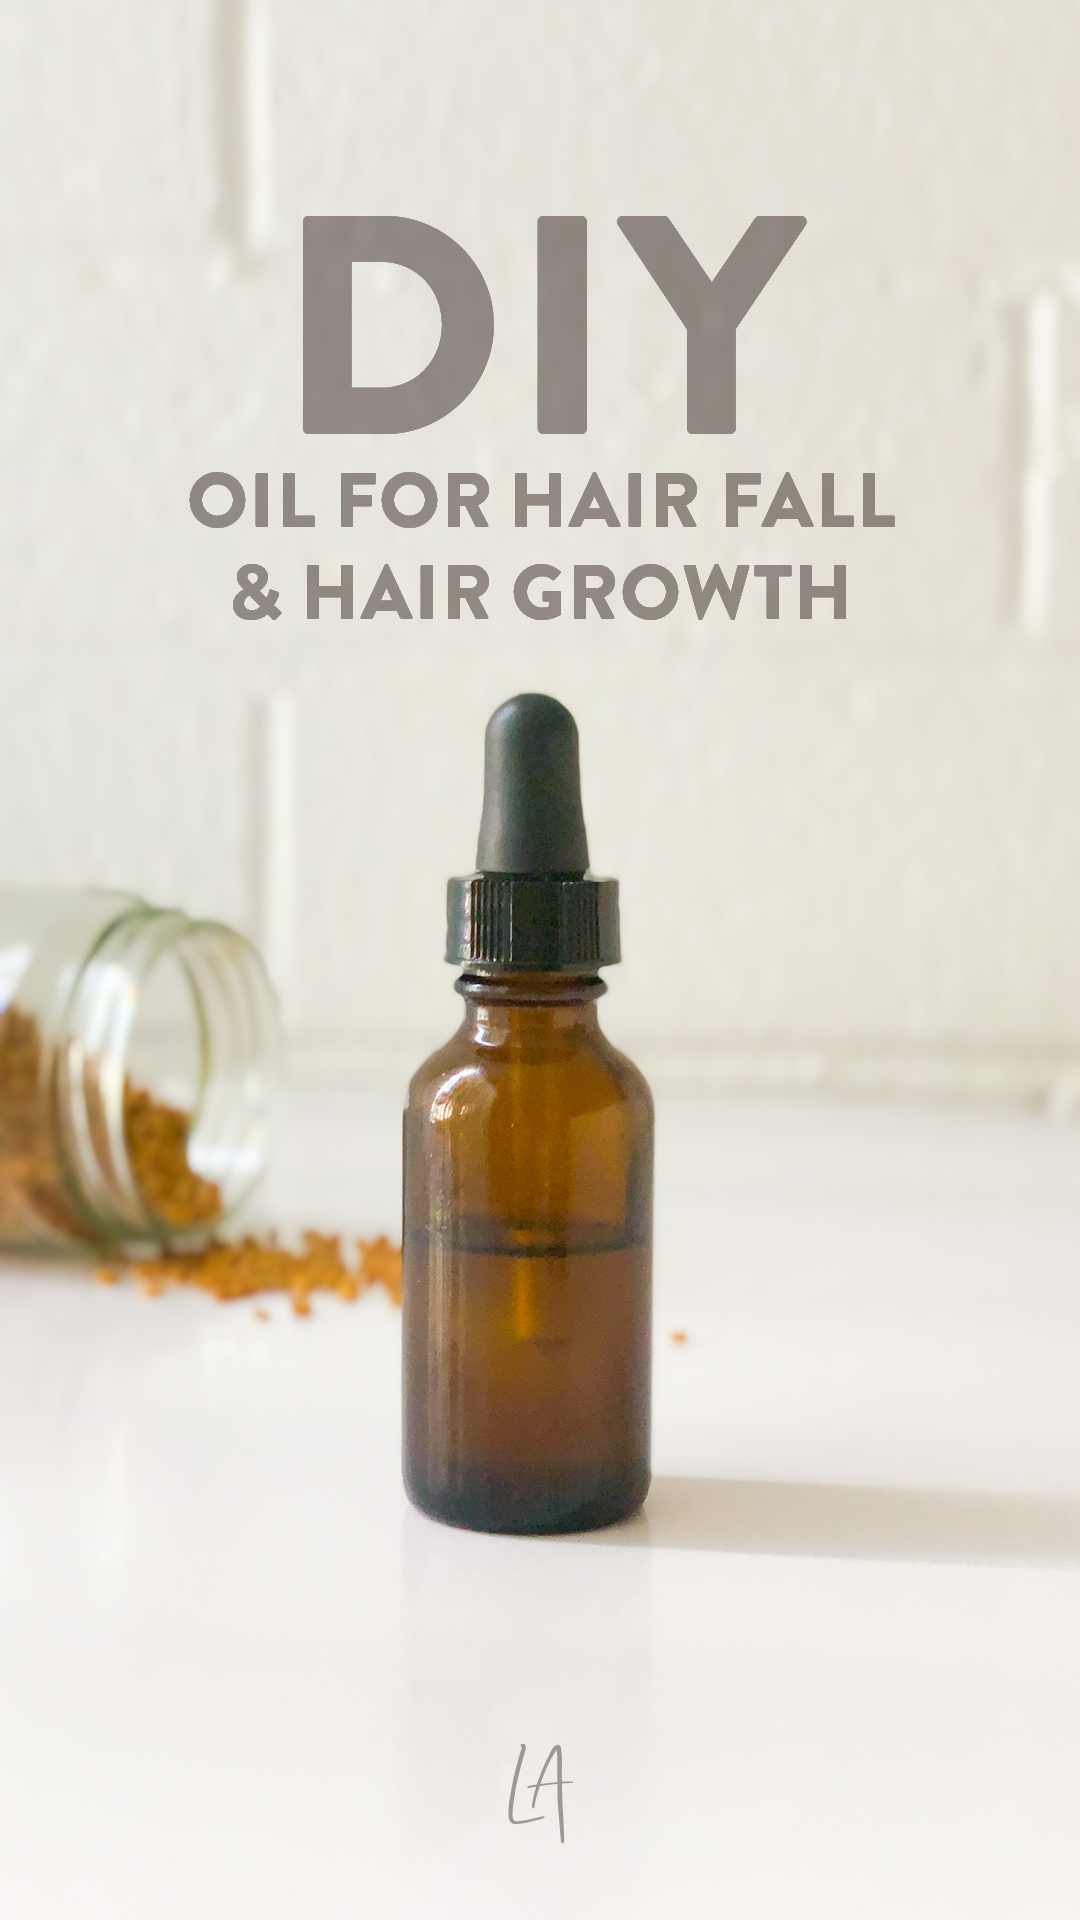 Homemade oil for hair fall and growth